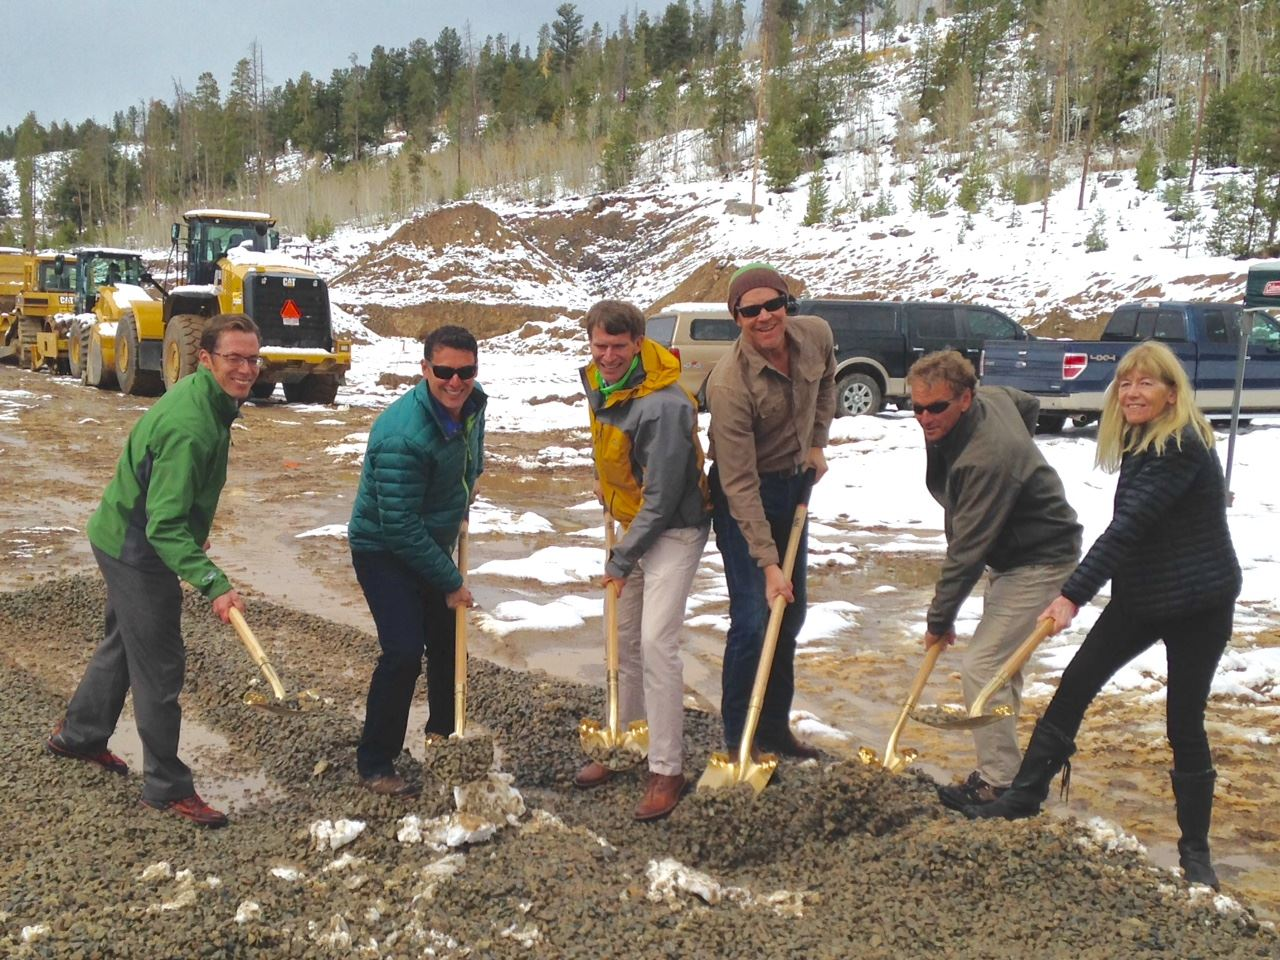 Six people breaking ground with ceremonial shovels.